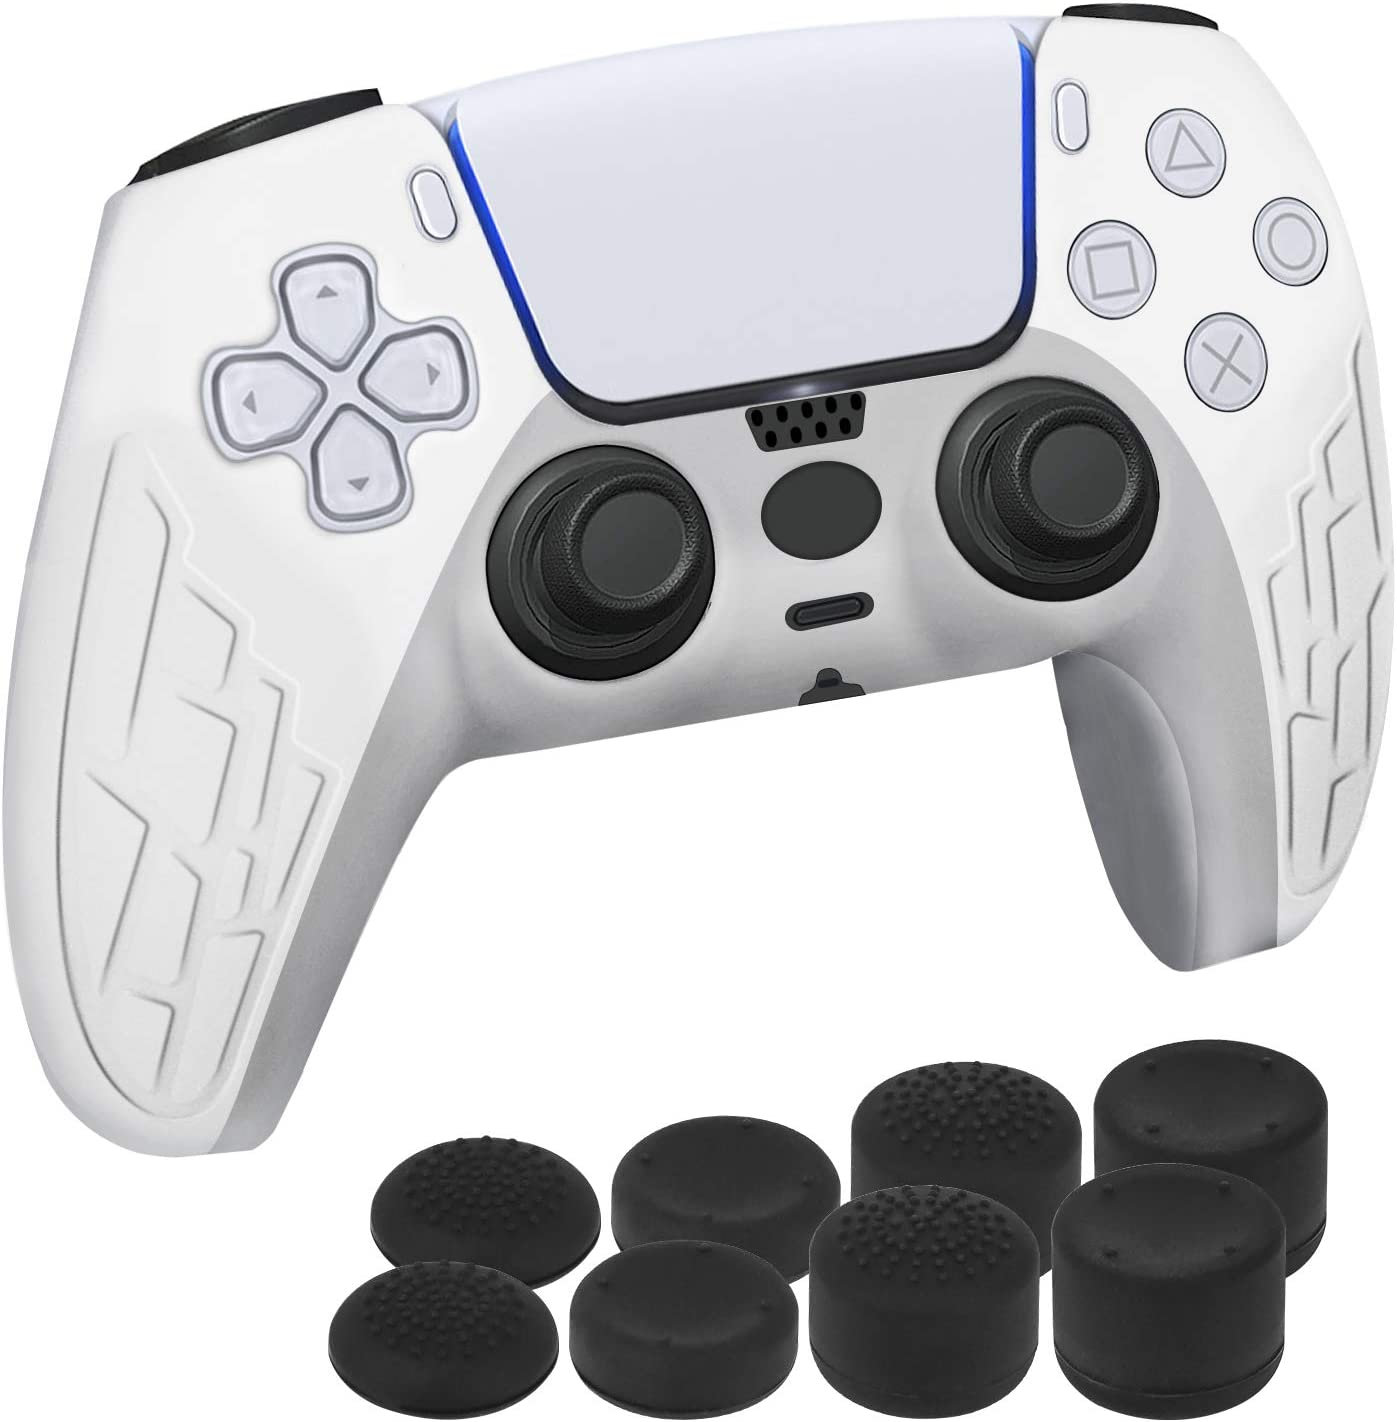 DLseego PS5コントローラー用保護カバー セット